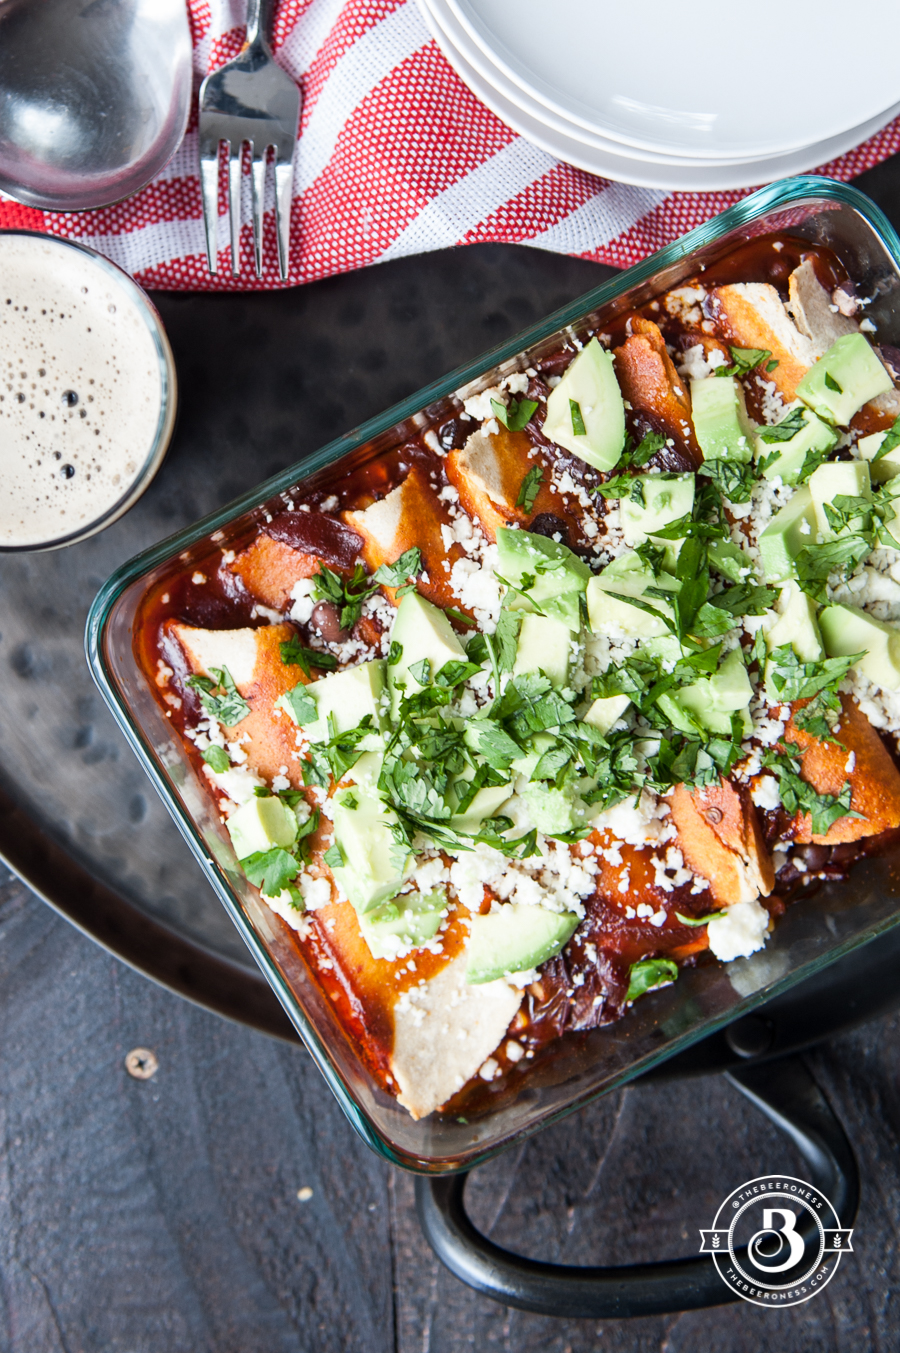 Bet vegan meal I've ever made. Corn and Black Bean Enchiladas with Chipotle Stout Red Sauce #vegan #recipe #meatless #vegetarian